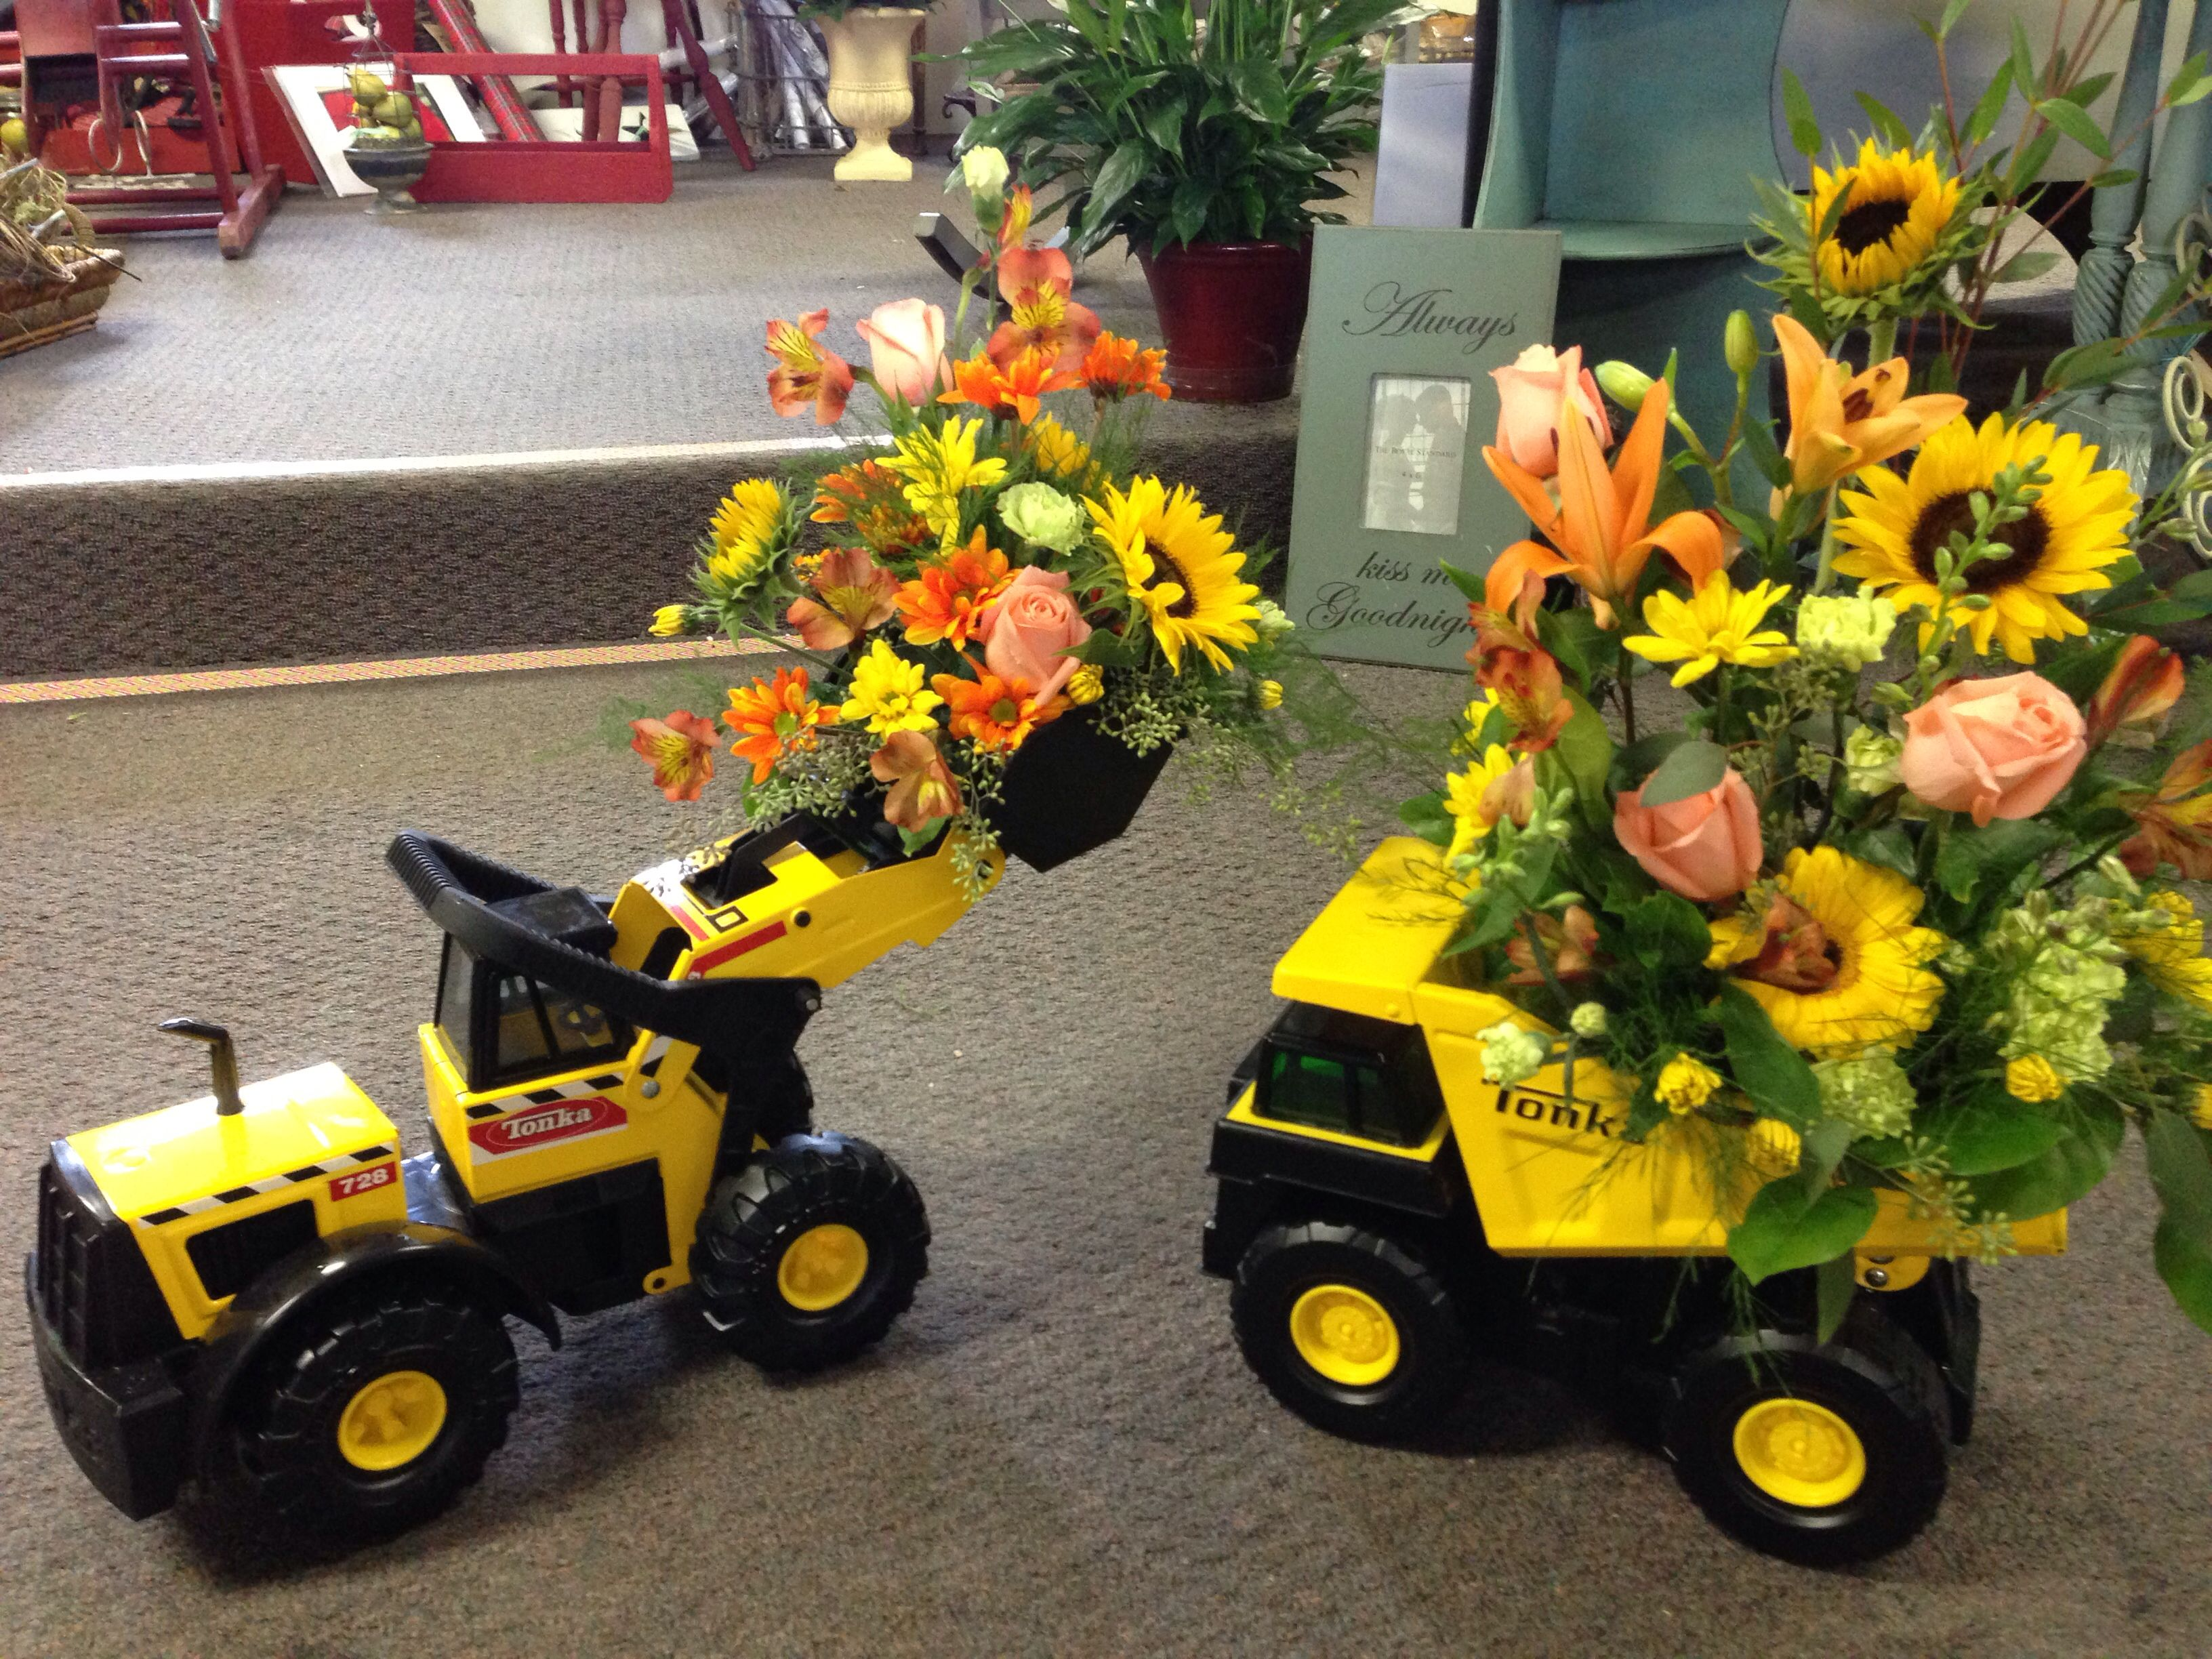 Toy tonka equipment with fresh arrangements designed by le